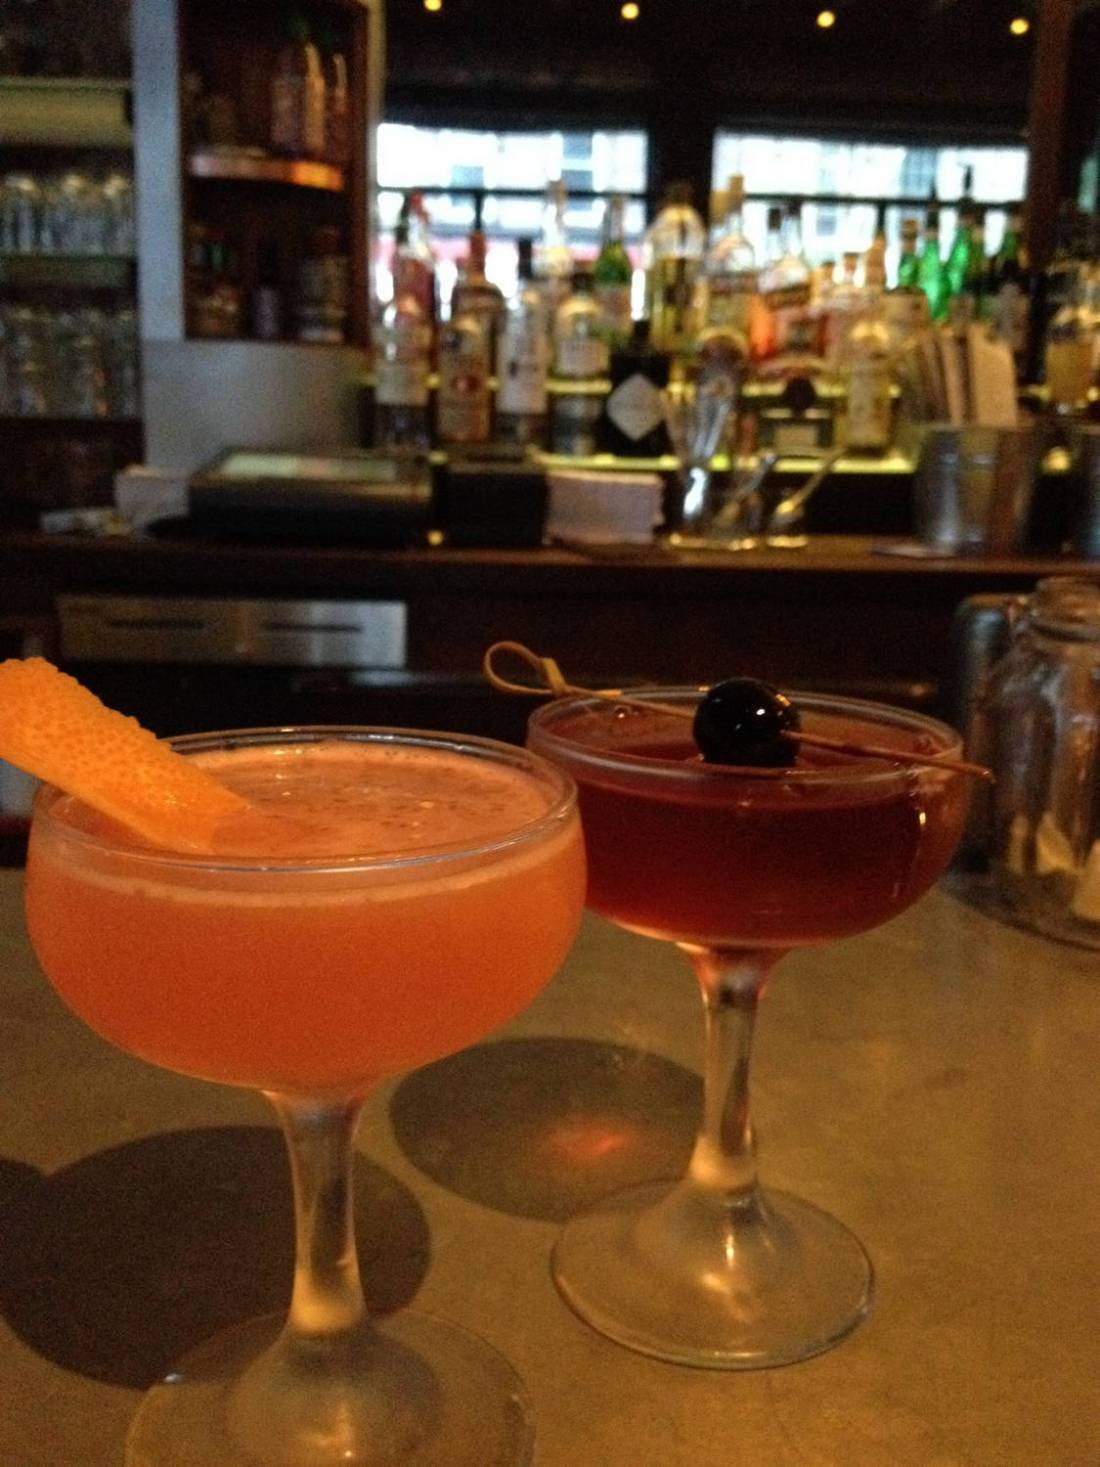 Our cocktails at Eugene & Co in Bedford-Stuyvesant, Brooklyn - New York, USA